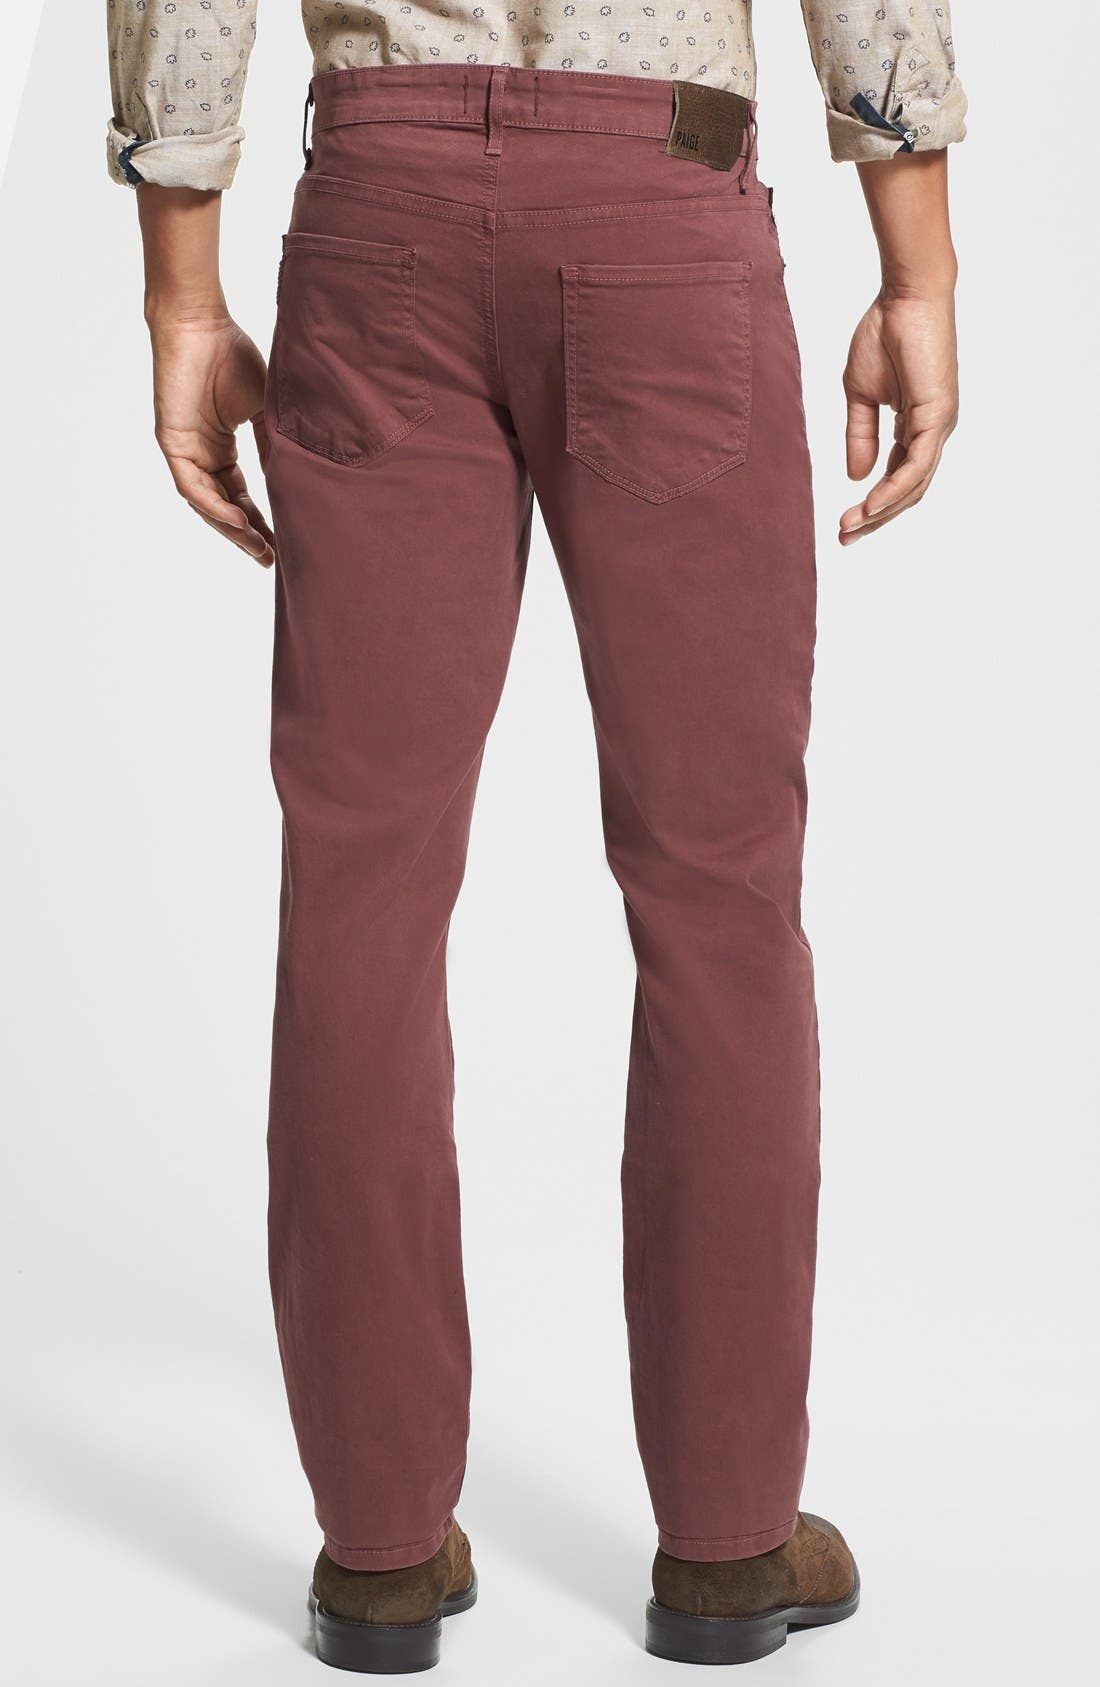 Normandie Slim Straight Leg Twill Pants,                             Alternate thumbnail 29, color,